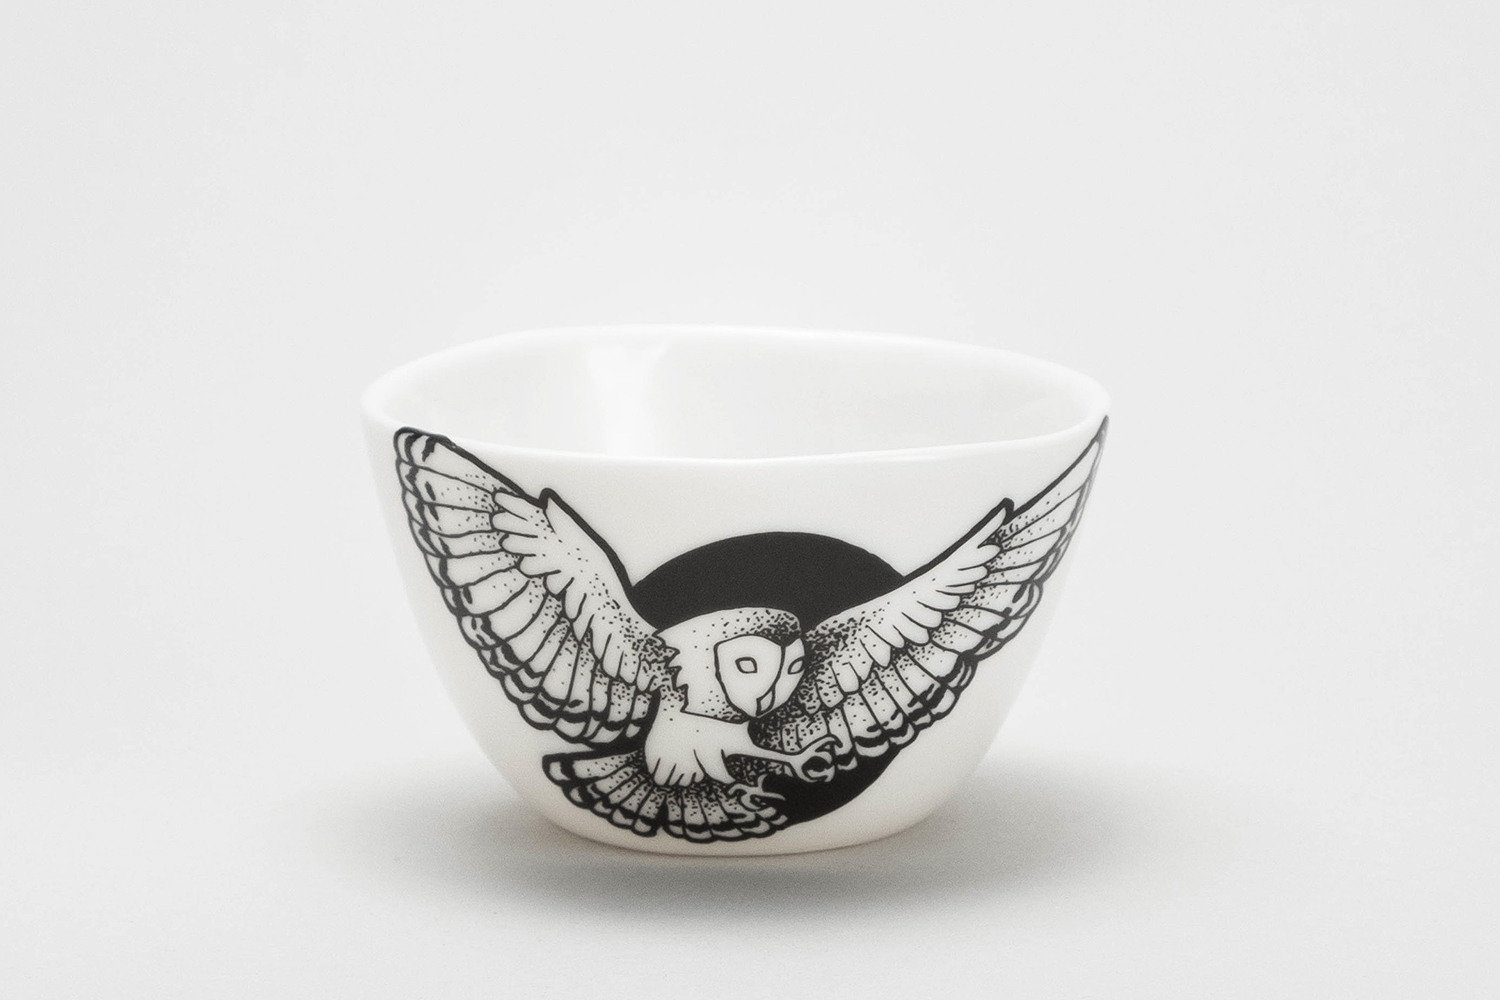 Tattoo owl black moon espresso cup small bowl modern tableware mug handmade porcelain black lines tattooed Berlin Antikapratika.jpg